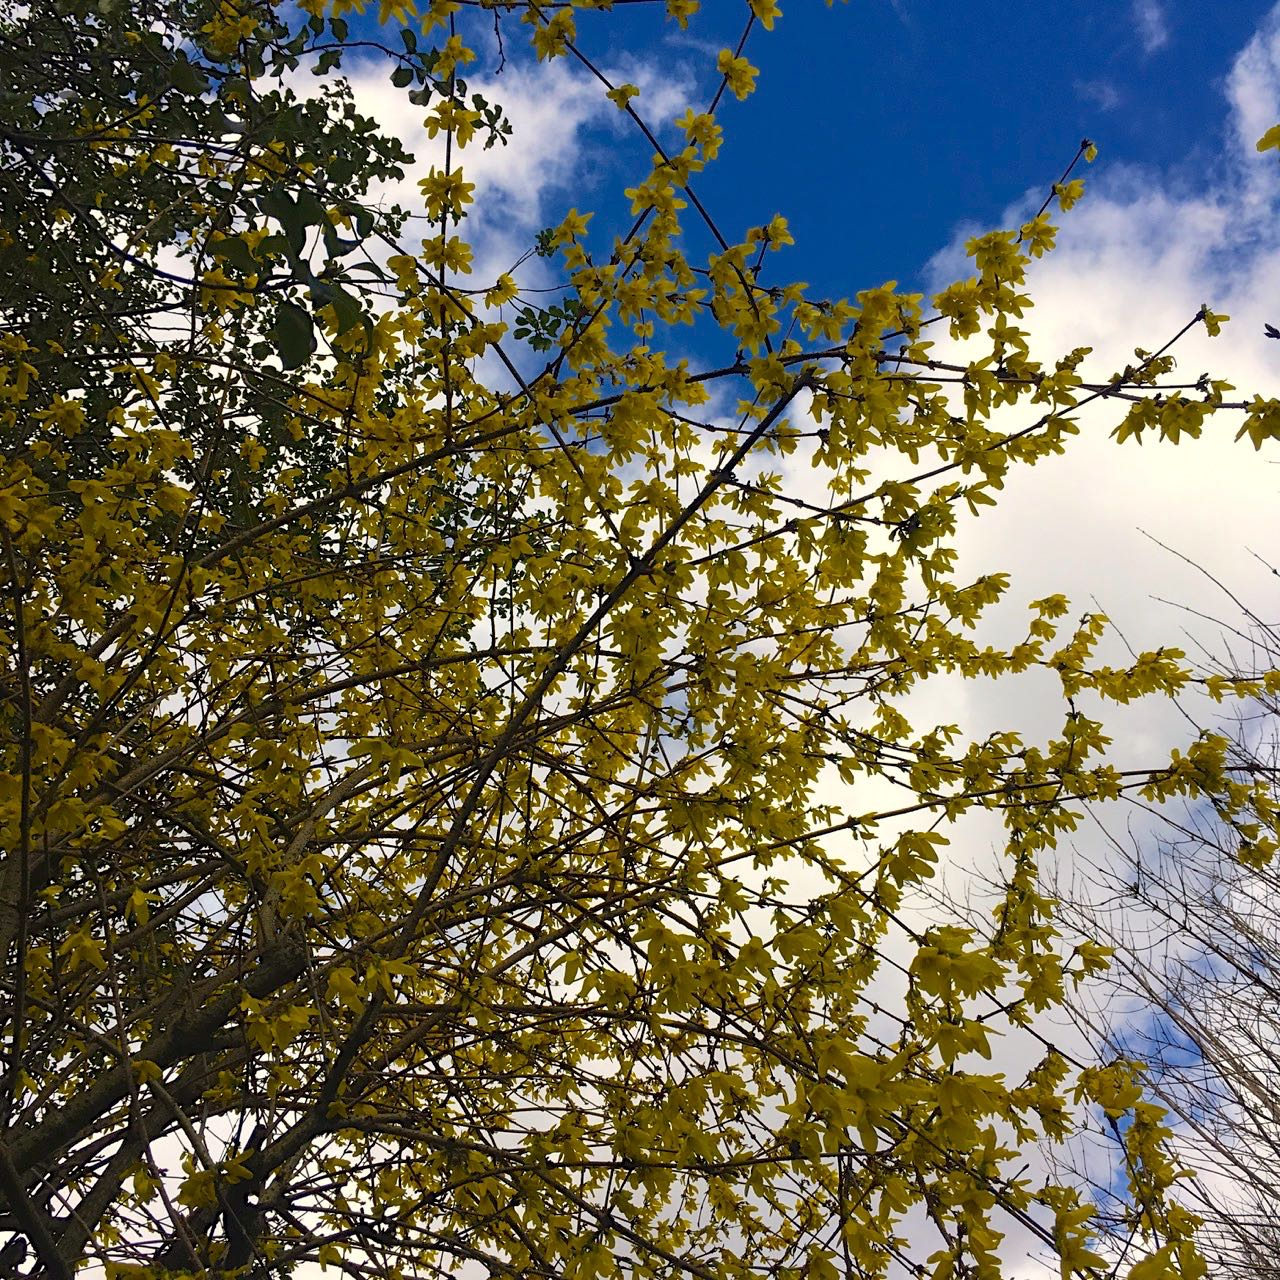 looking up into the forsythia